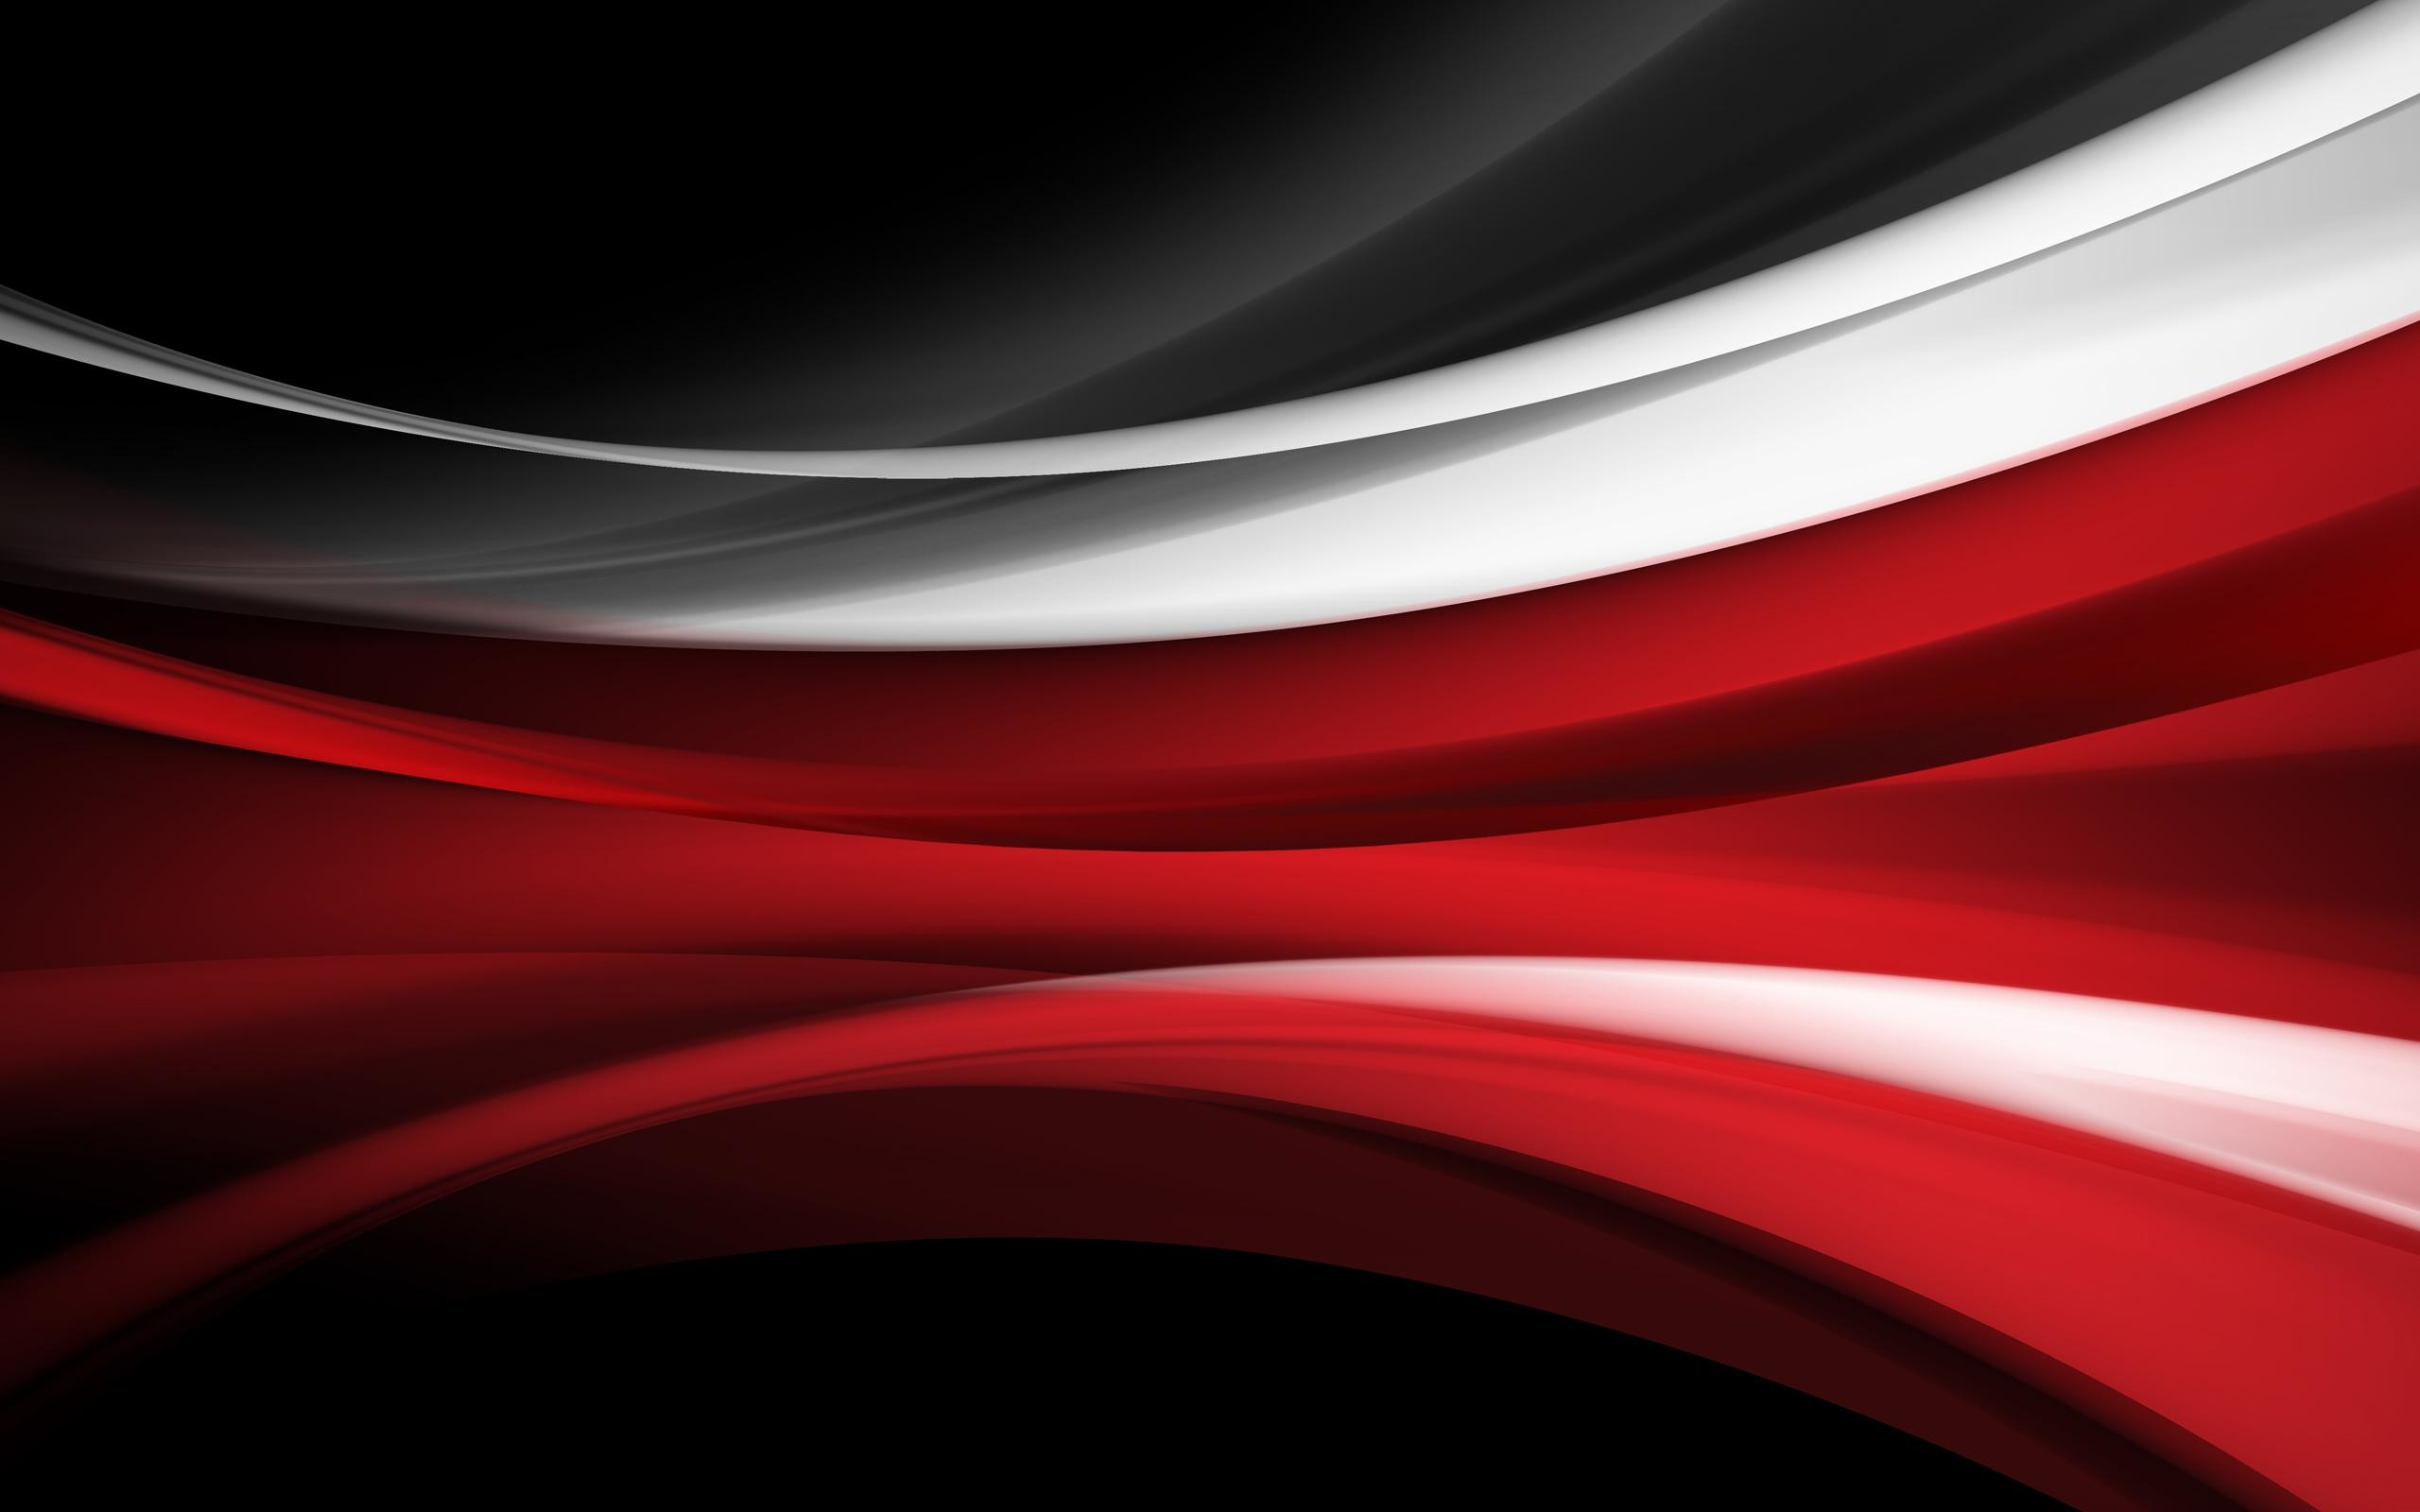 Free HD Black And Red Wallpapers Pixels Talk